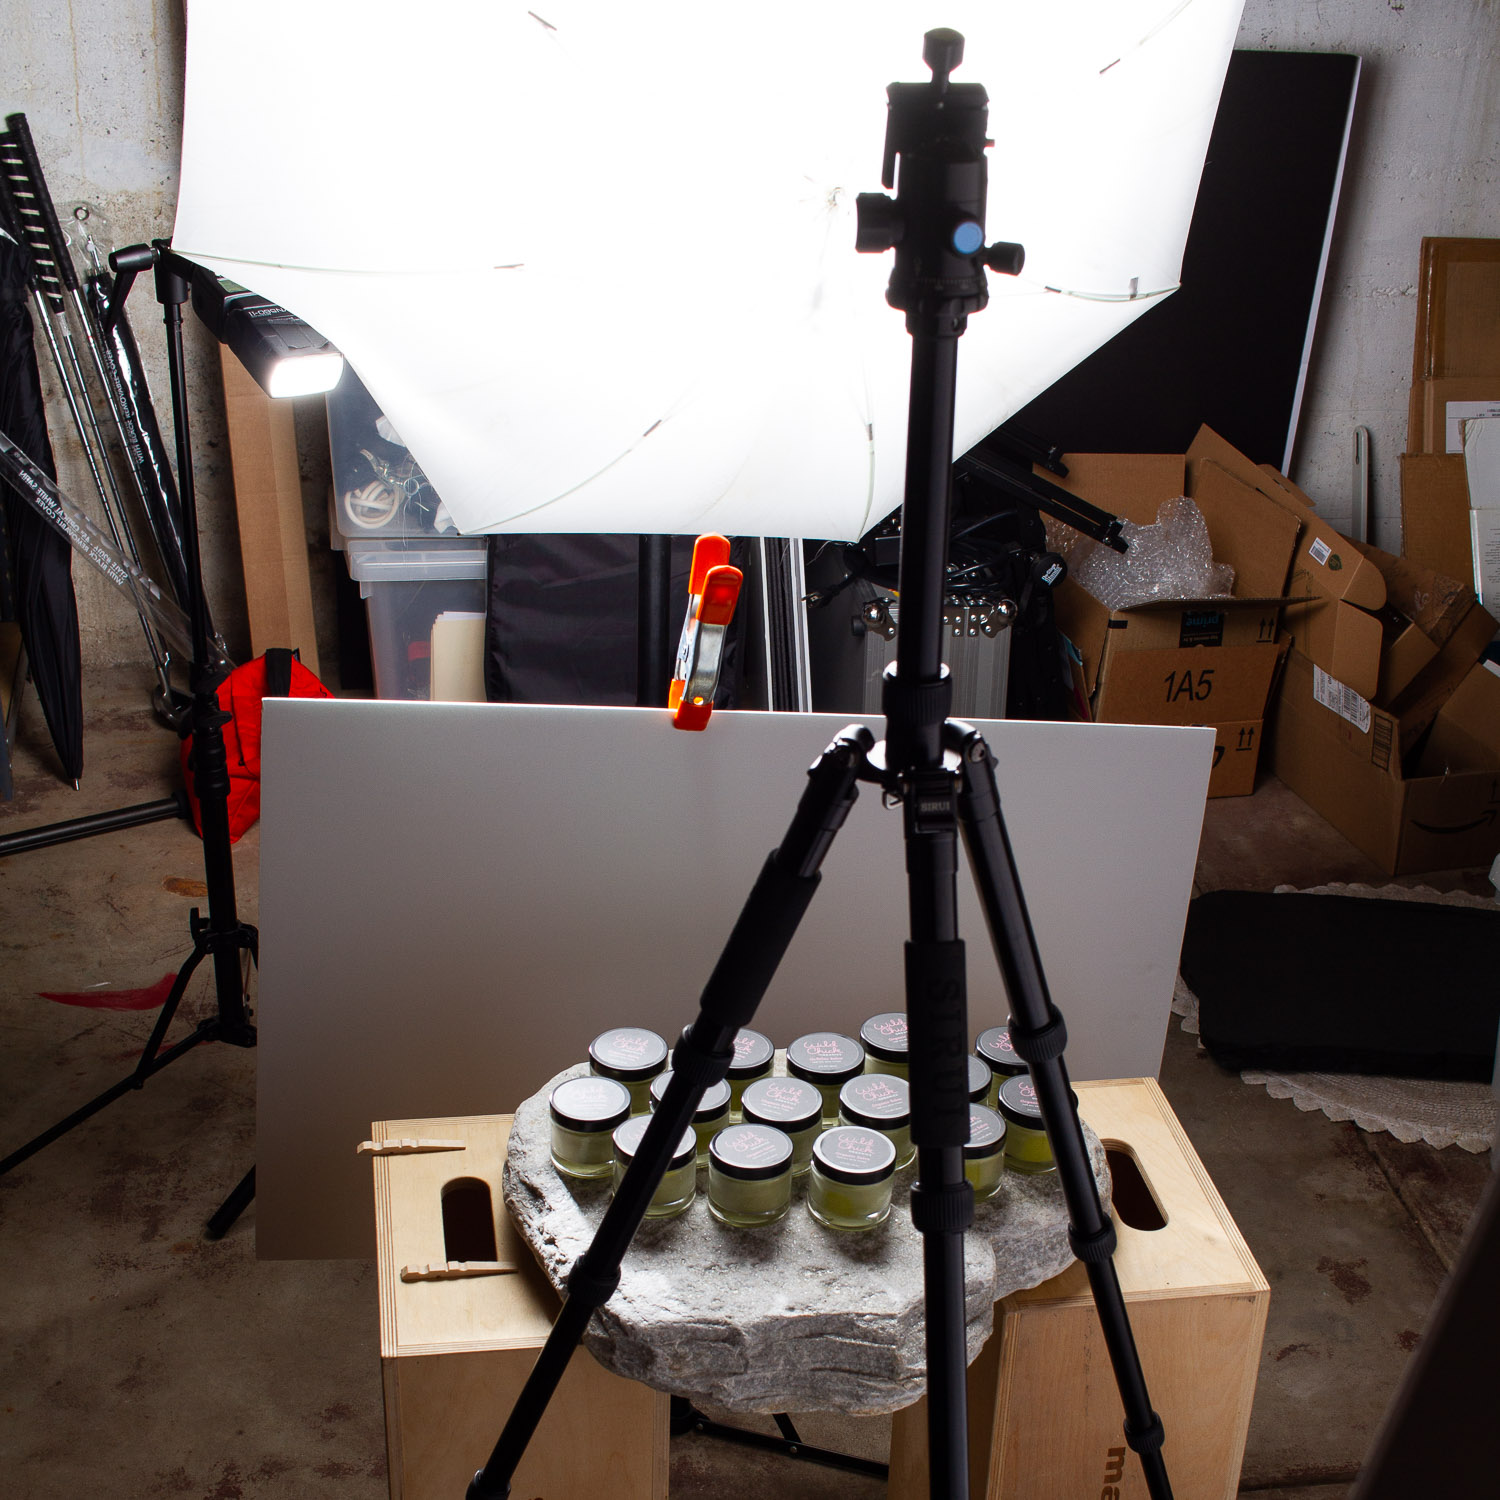 Product photography behind the scenes photo for Wild Chick Organics Skin Care